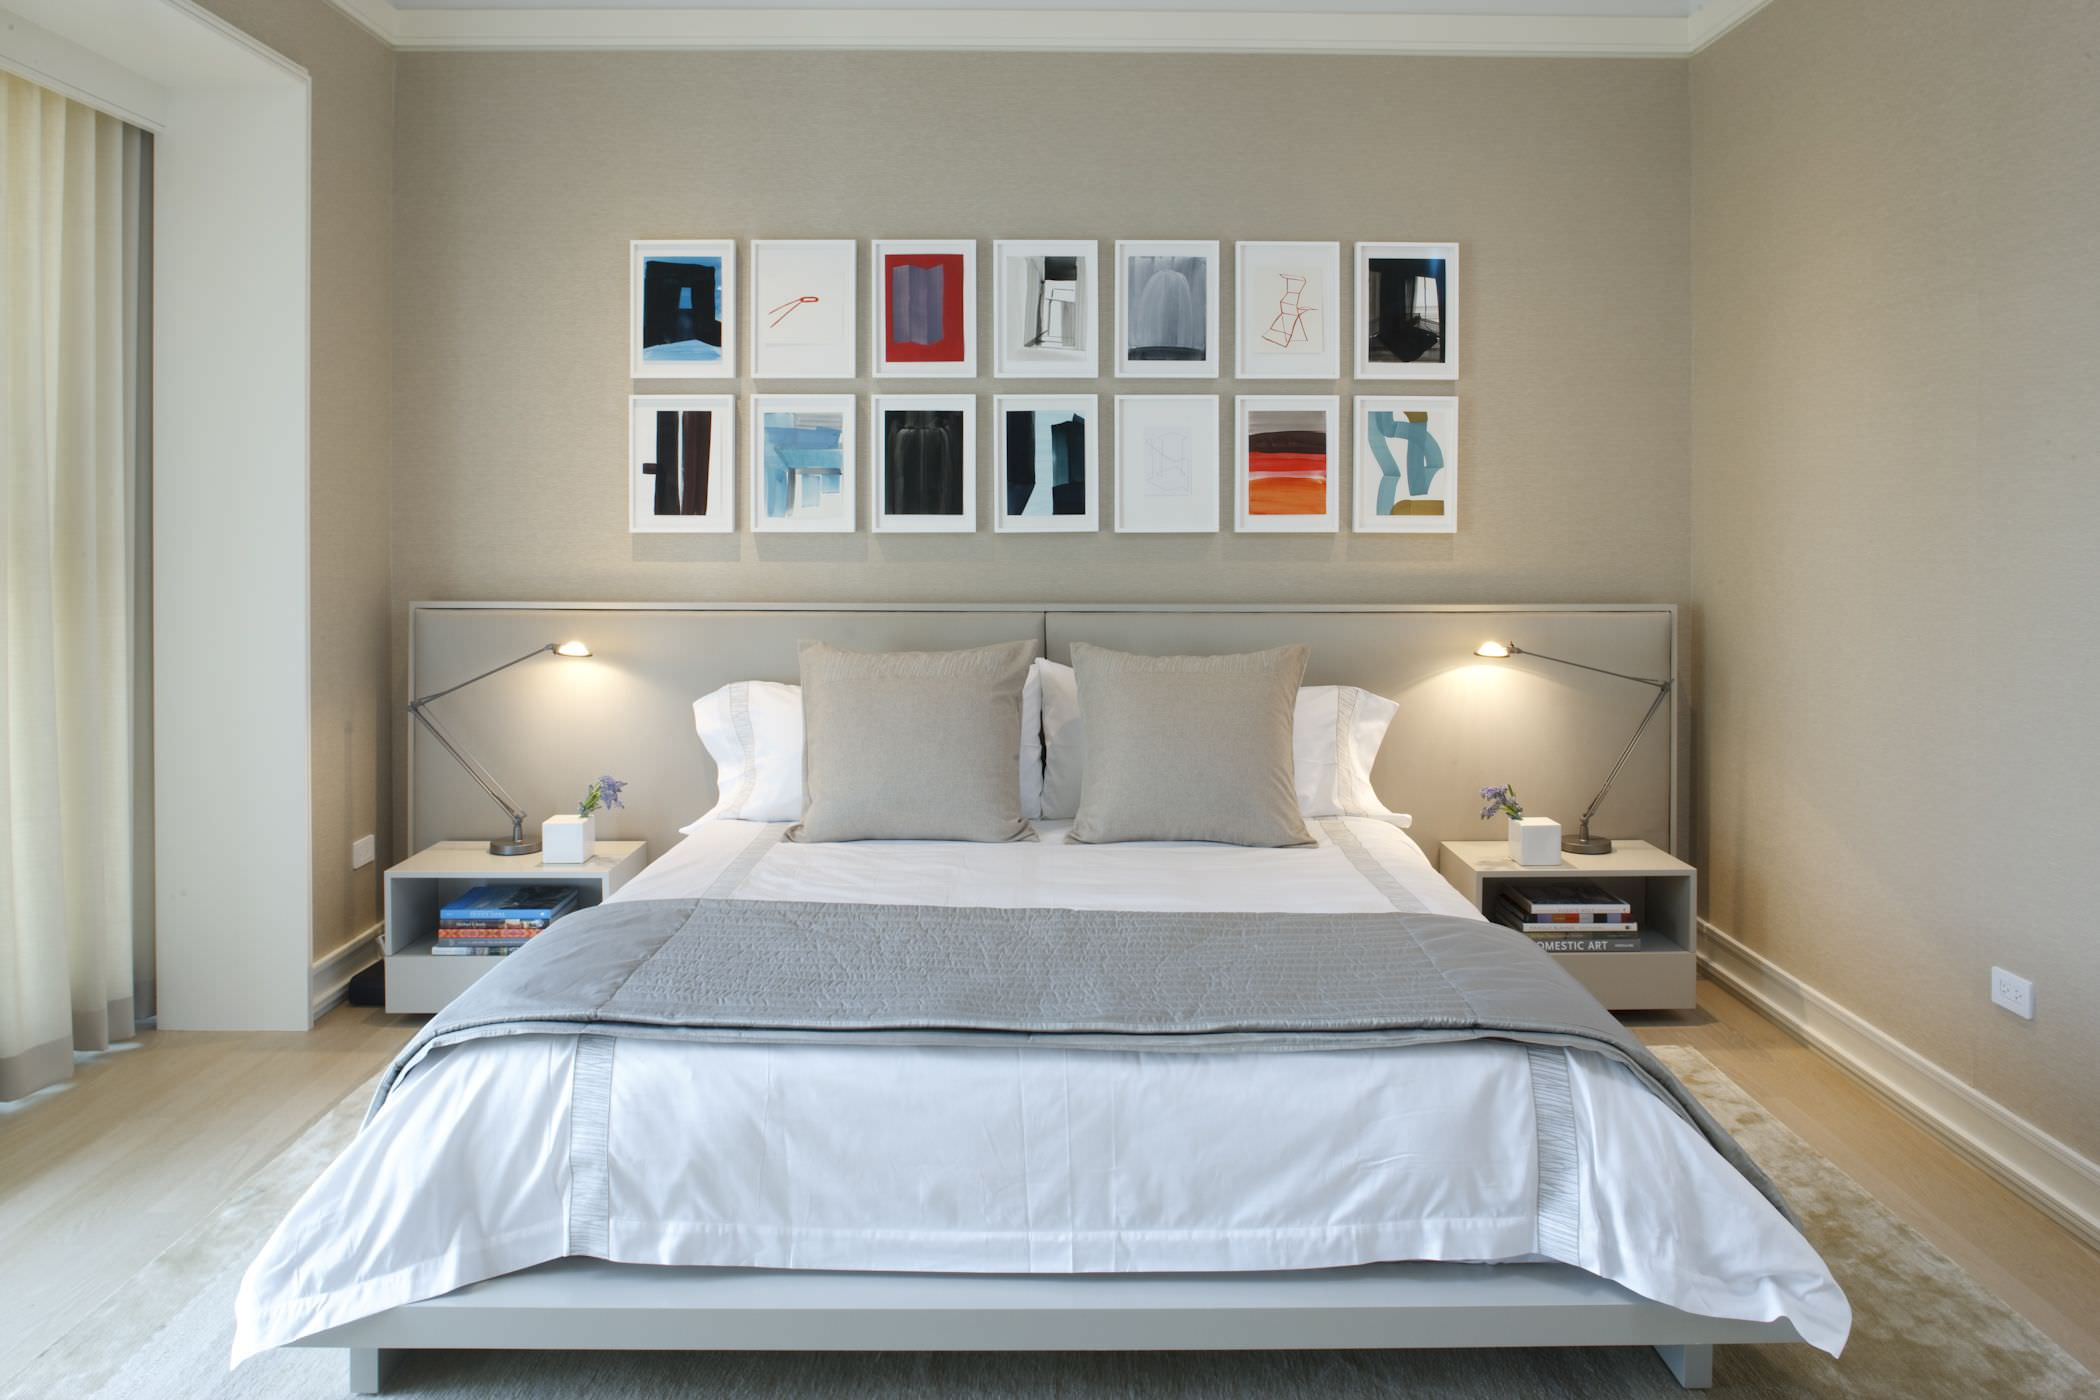 The lower bed creates more space giving the impression of a larger primary bedroom.